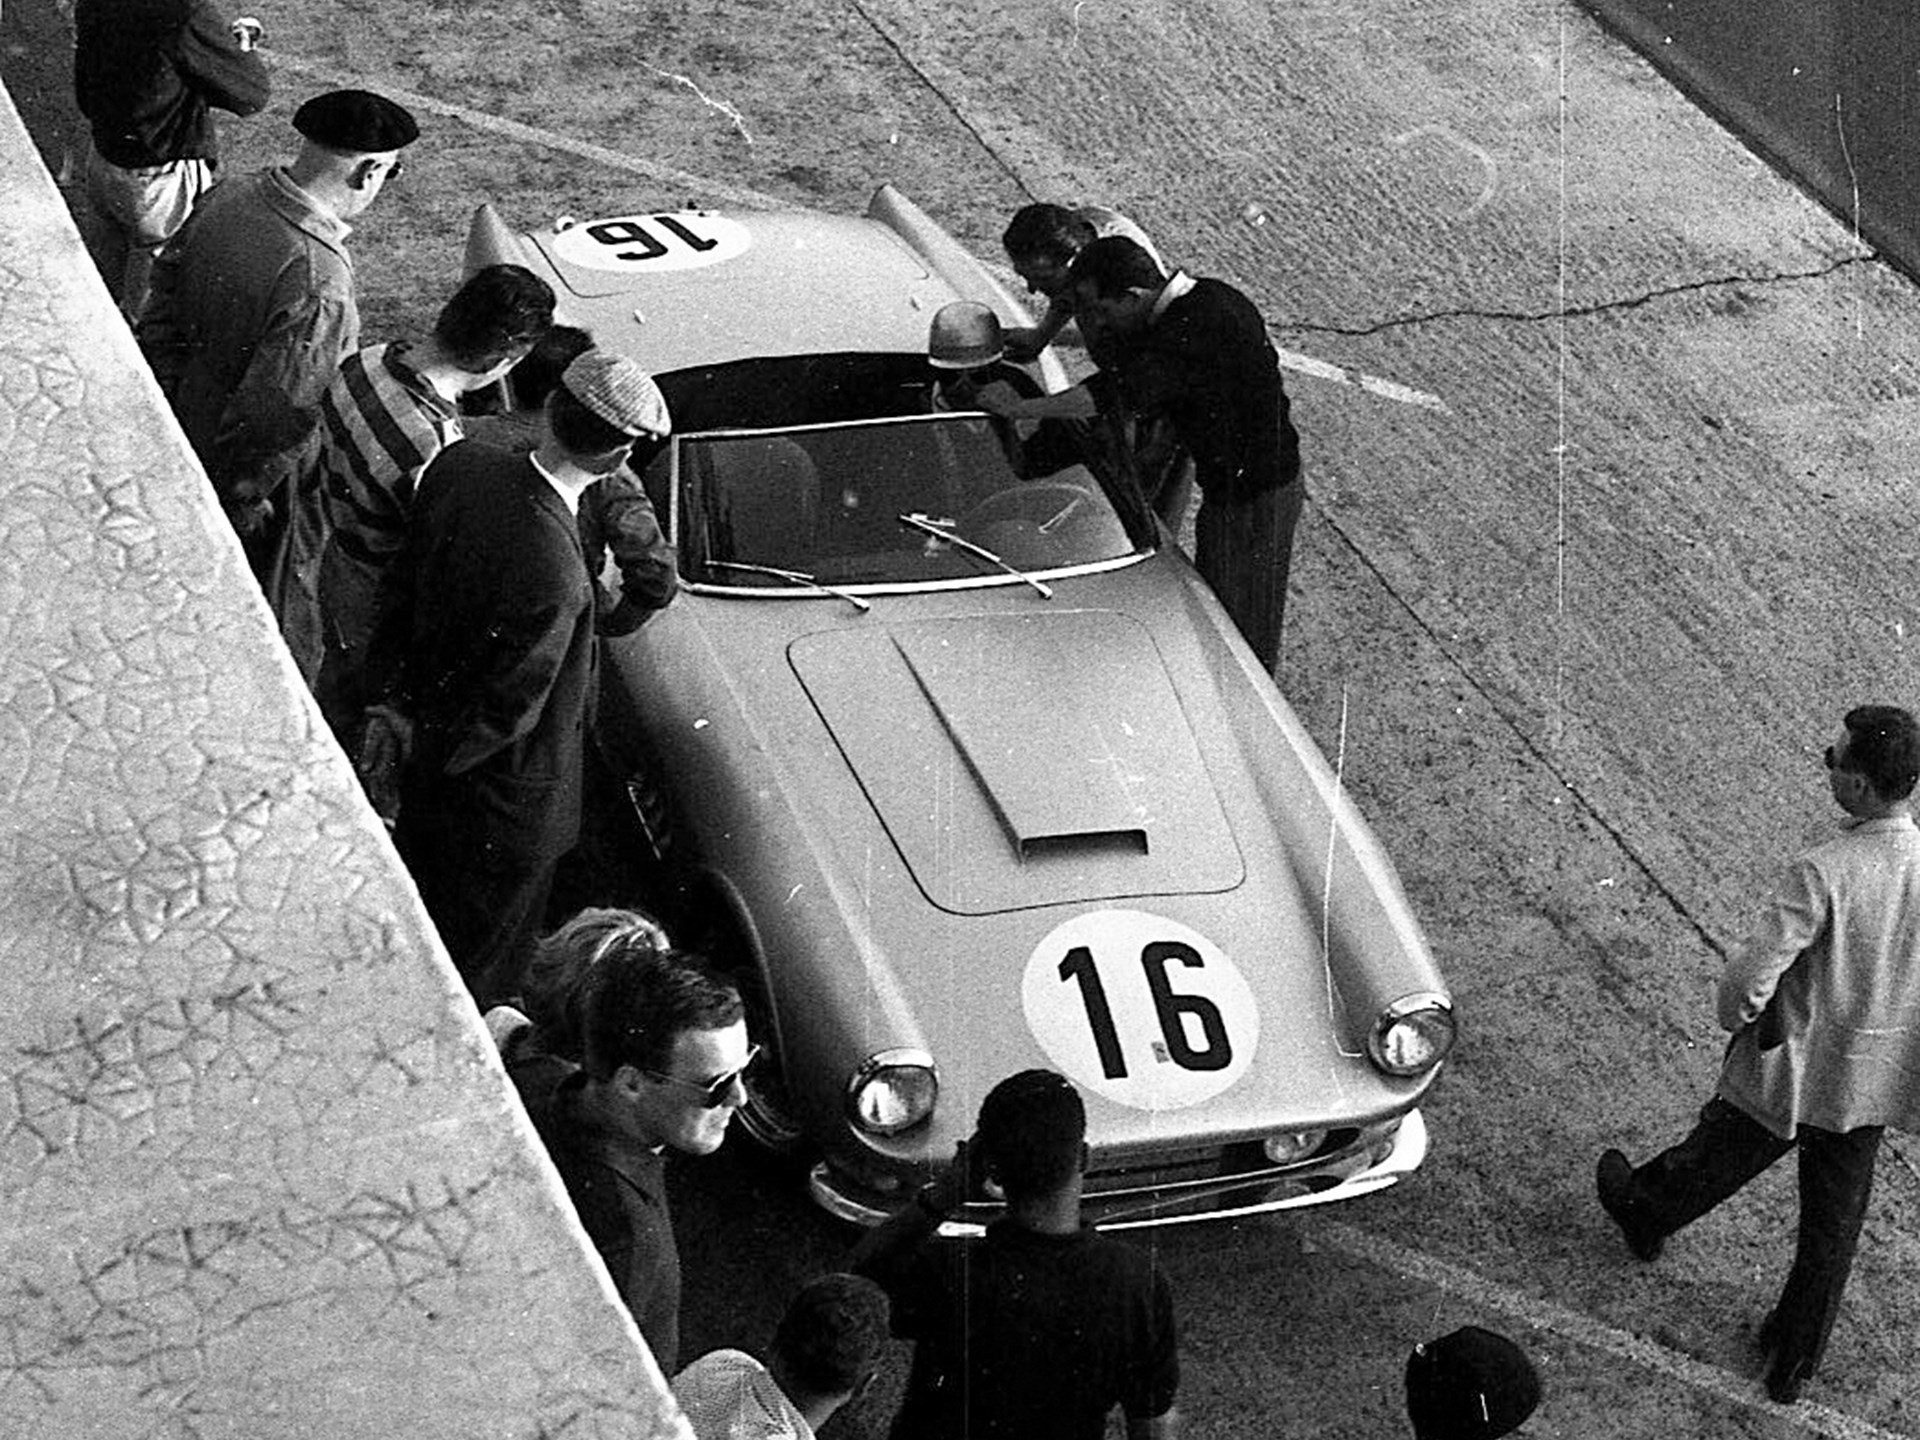 Bob Grossman's California Spider during the 1959 24 Hours of Le Mans.